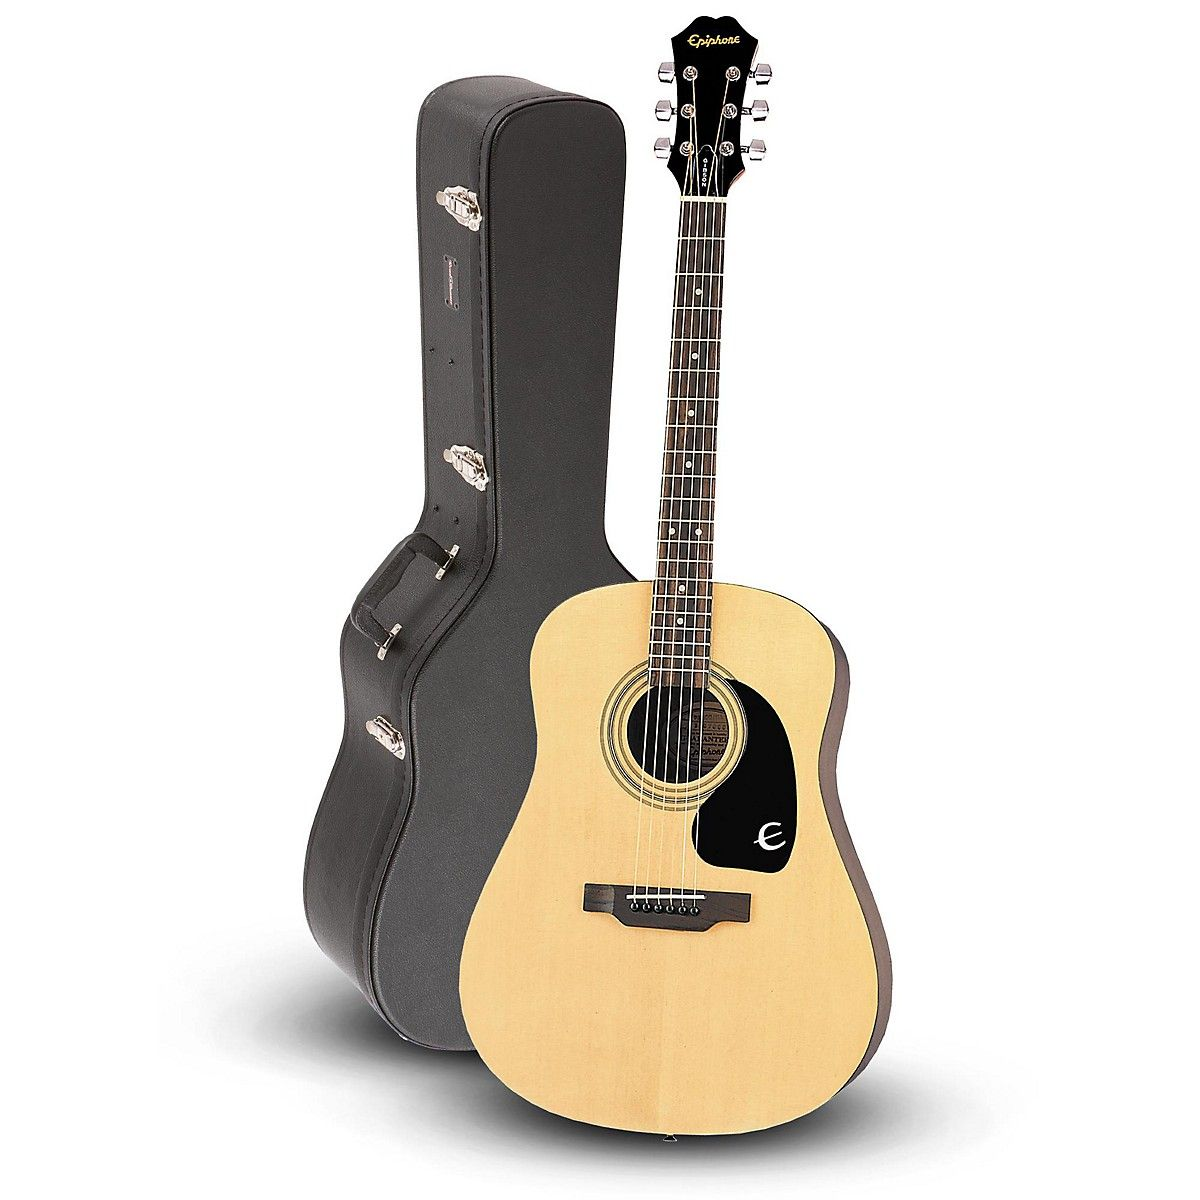 Epiphone Dr 100 Acoustic Guitar Natural With Road Runner Rrdwa Case Epiphone Guitar Acoustic Guitar